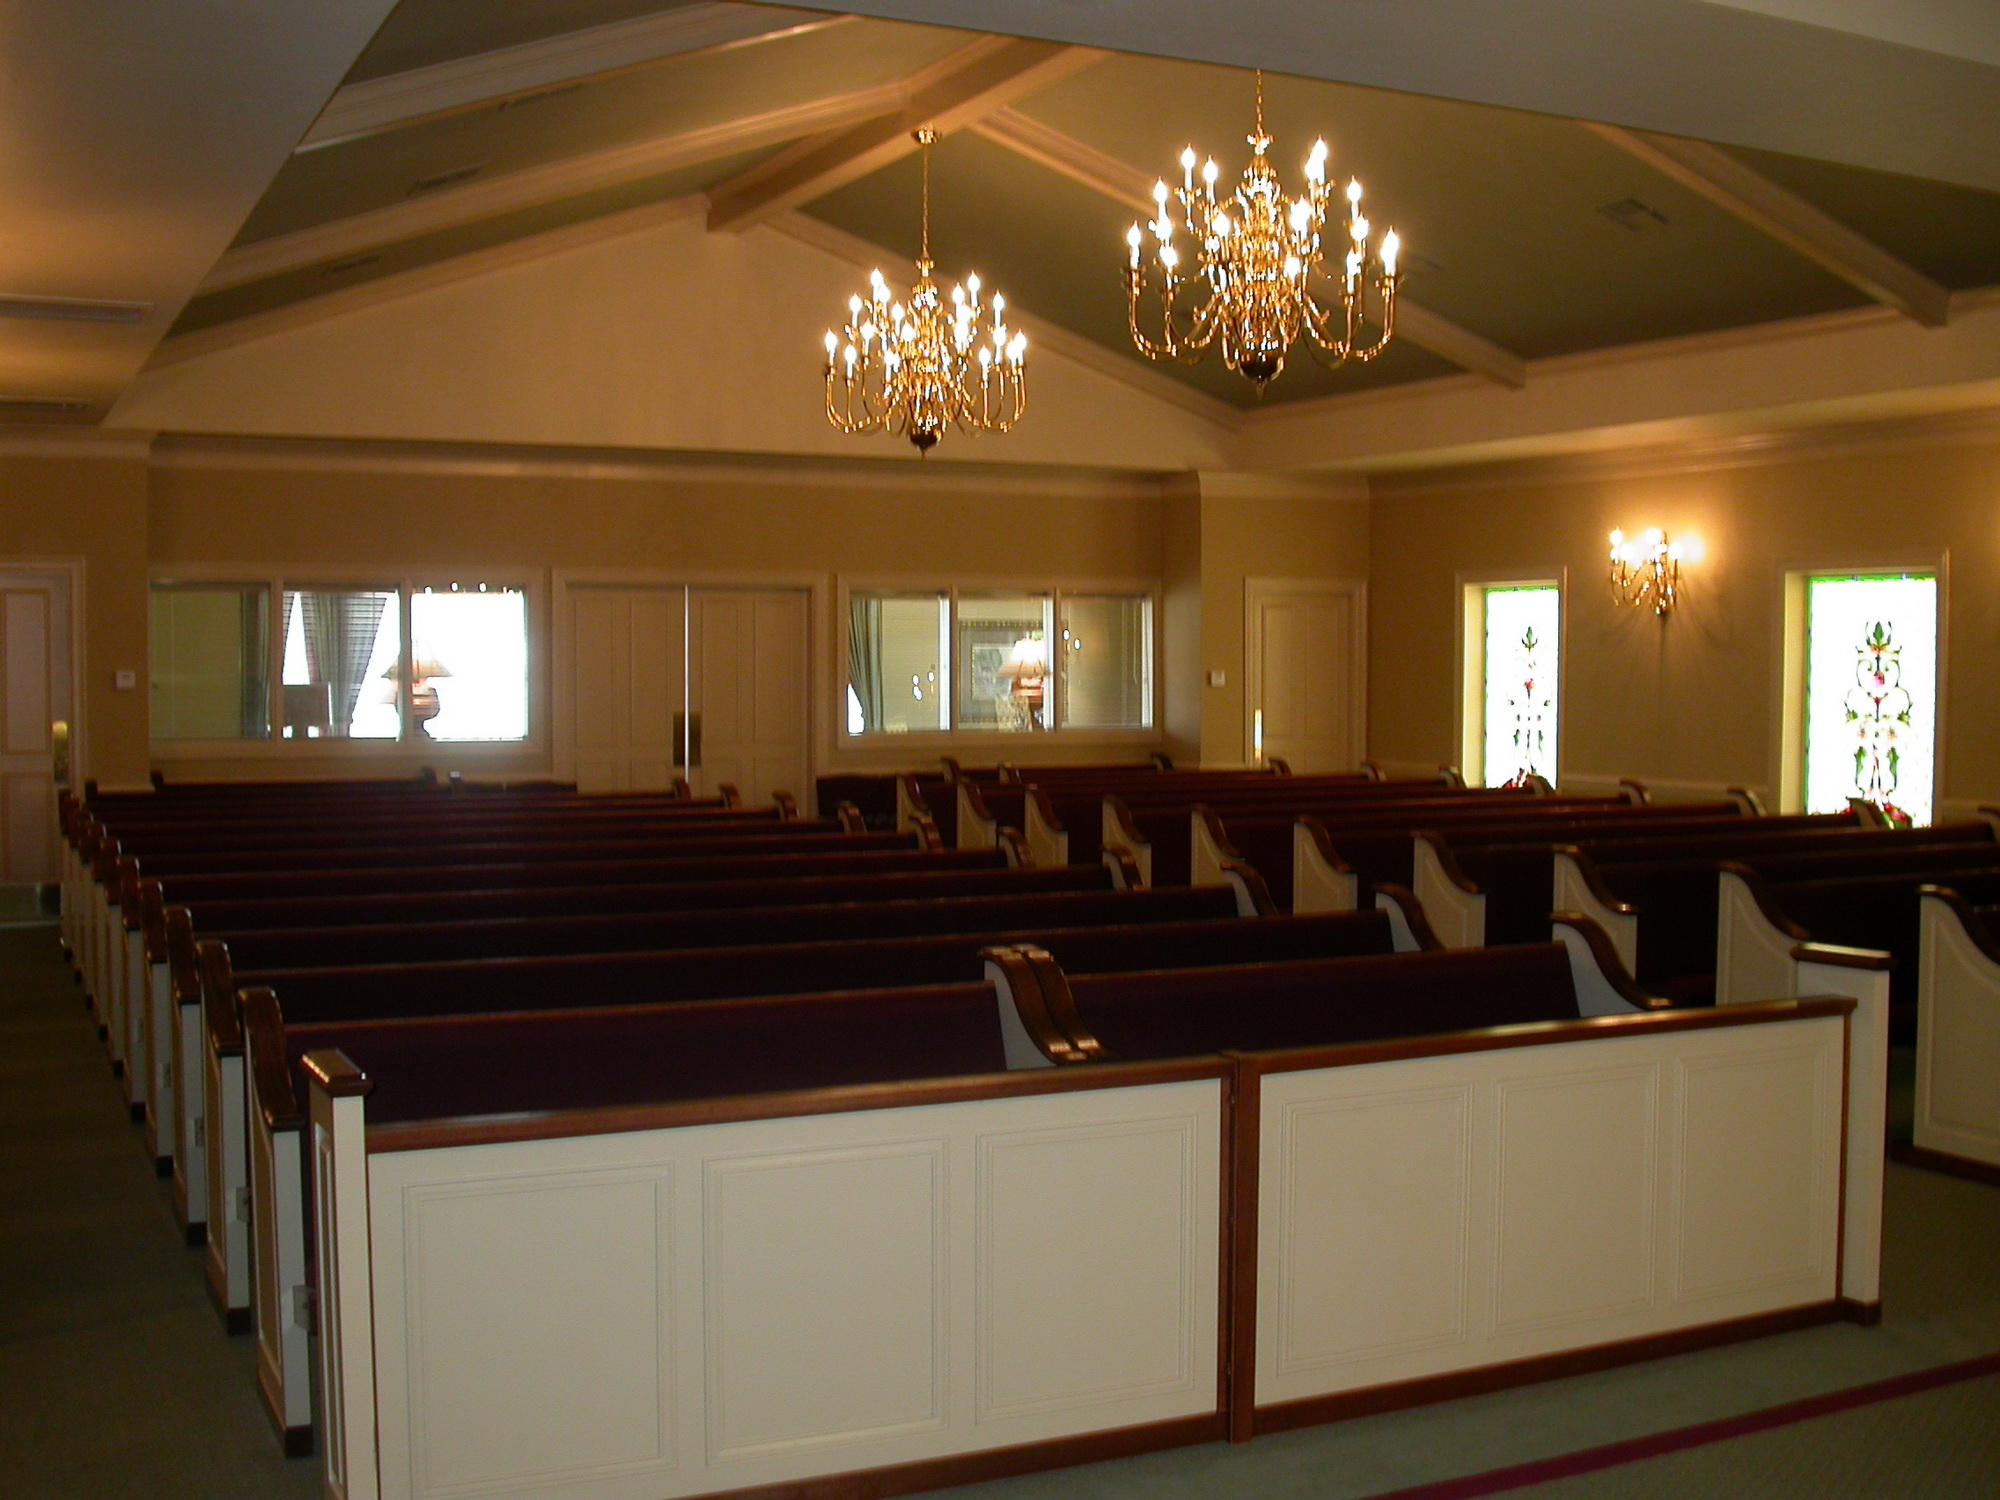 New hope funeral home jst architects - Funeral home designs ...